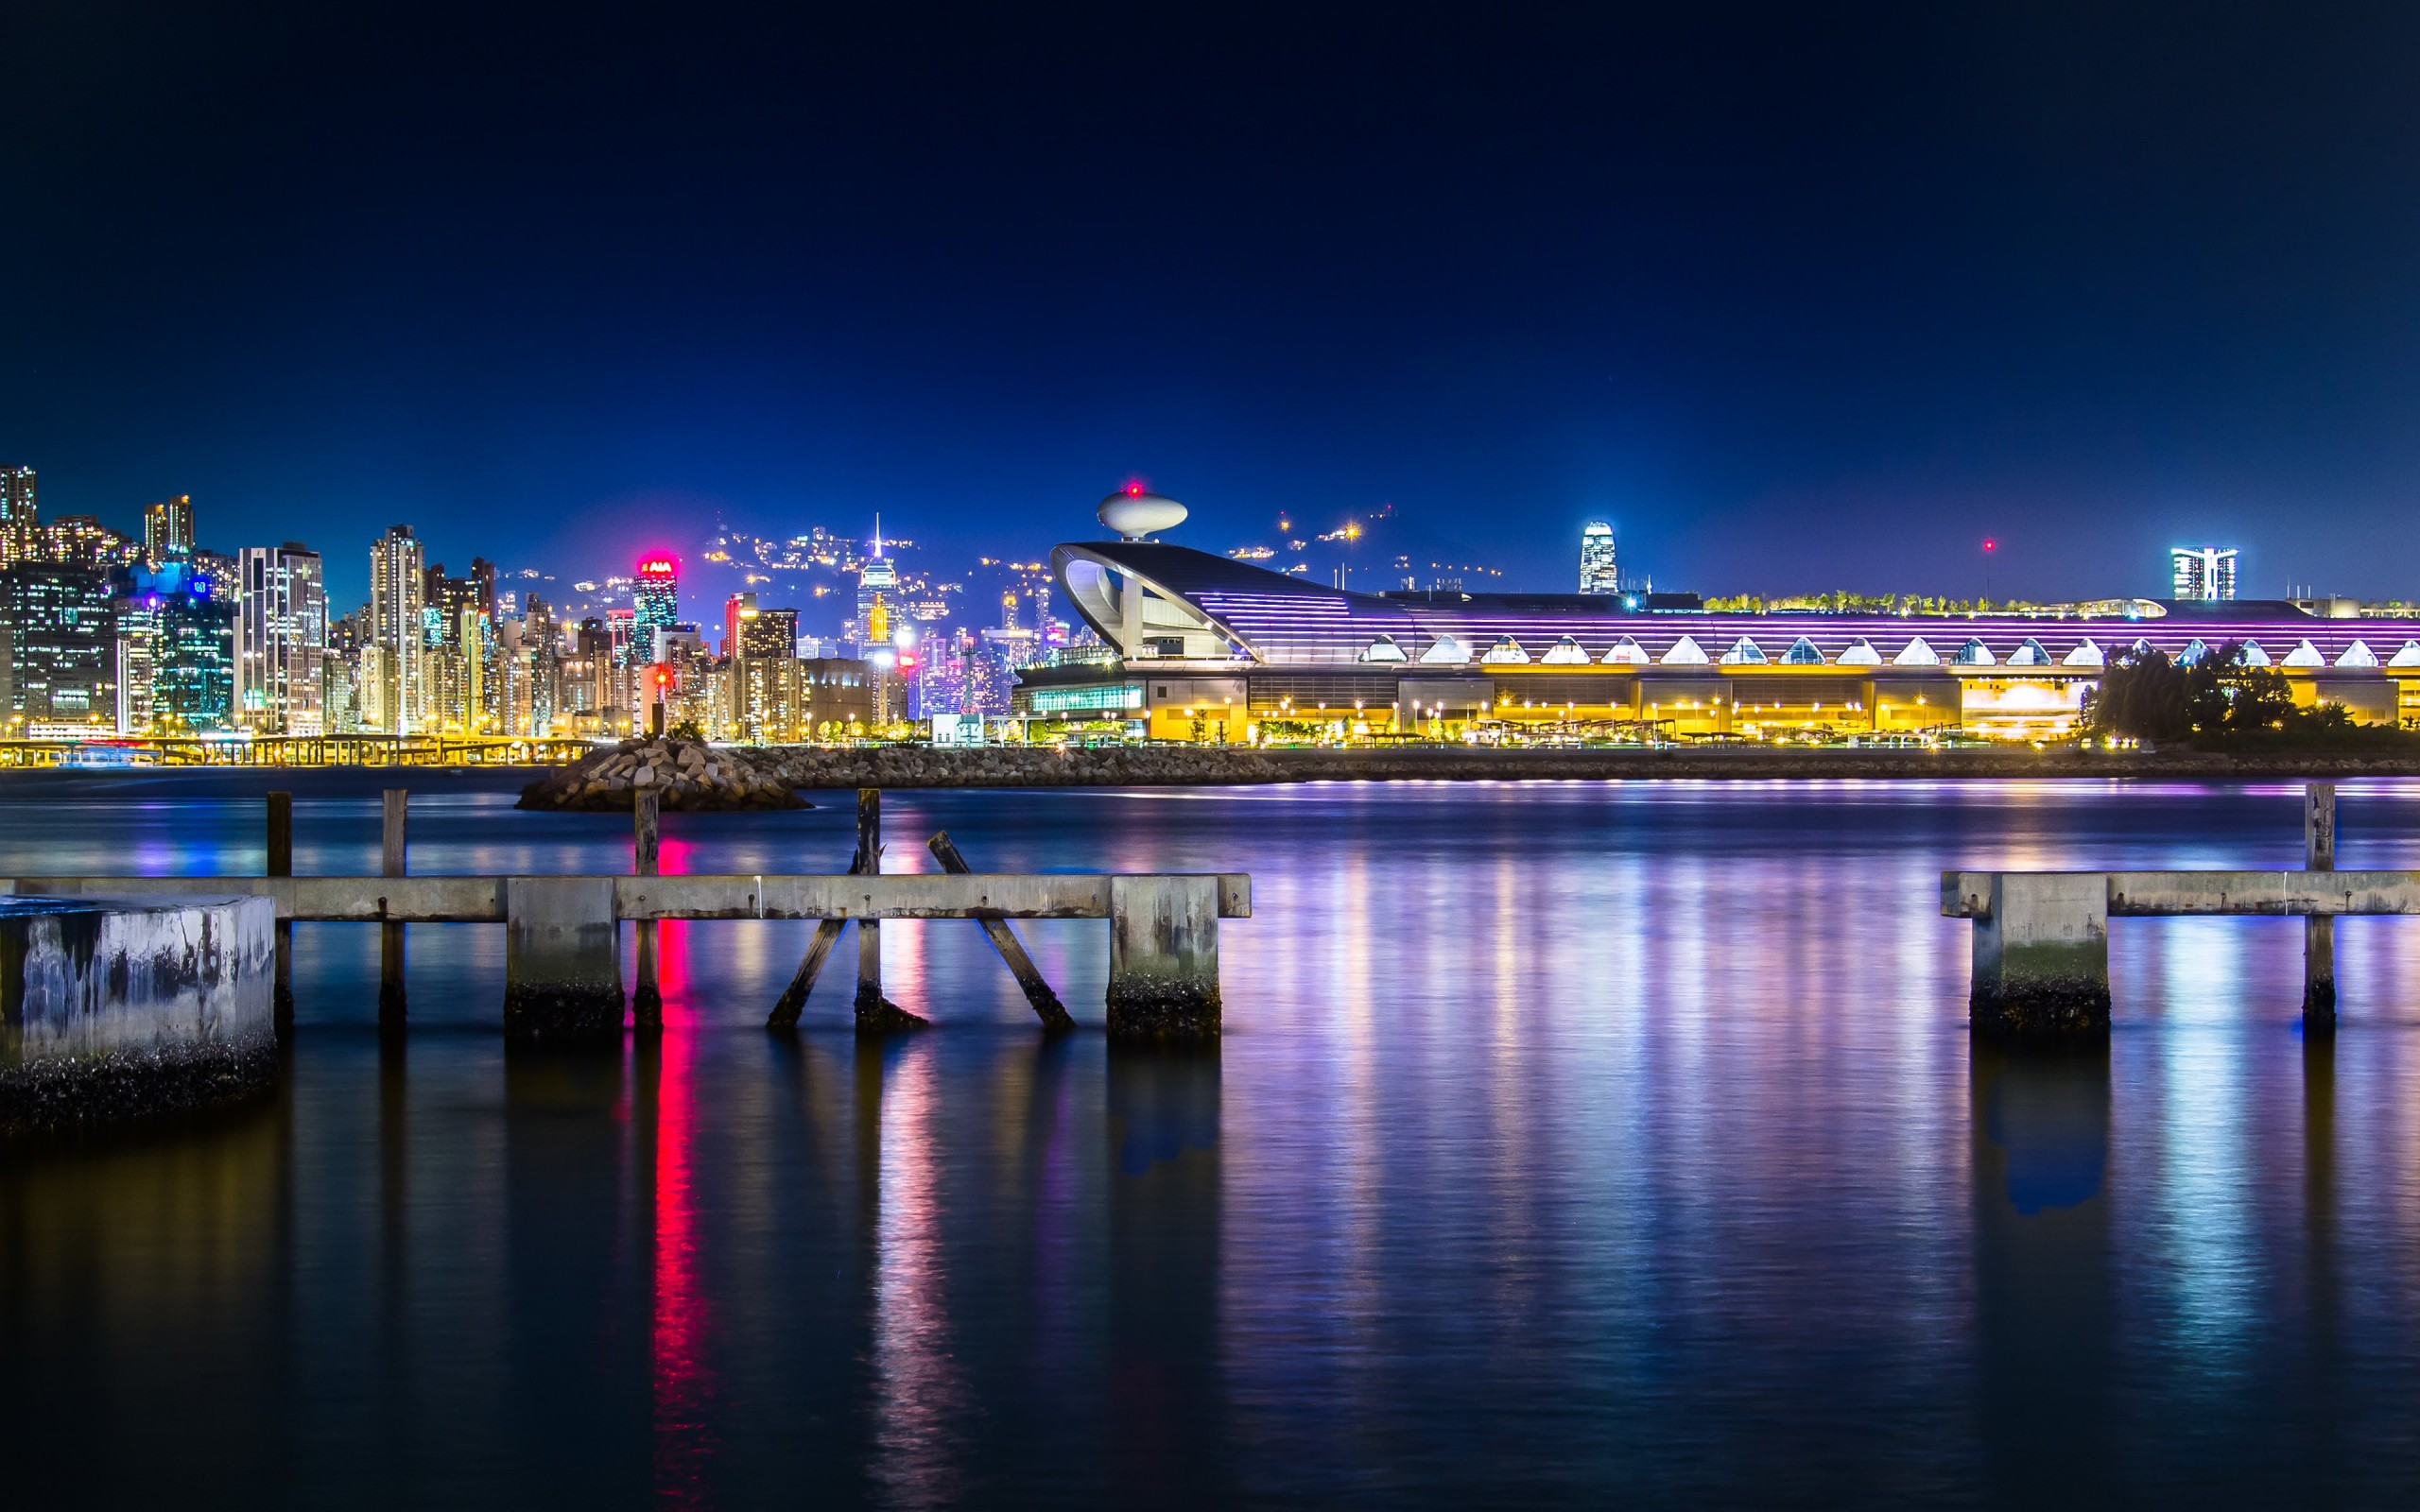 Kai Tak Cruise Terminal, Hong Kong Wallpaper for Desktop 2560x1600